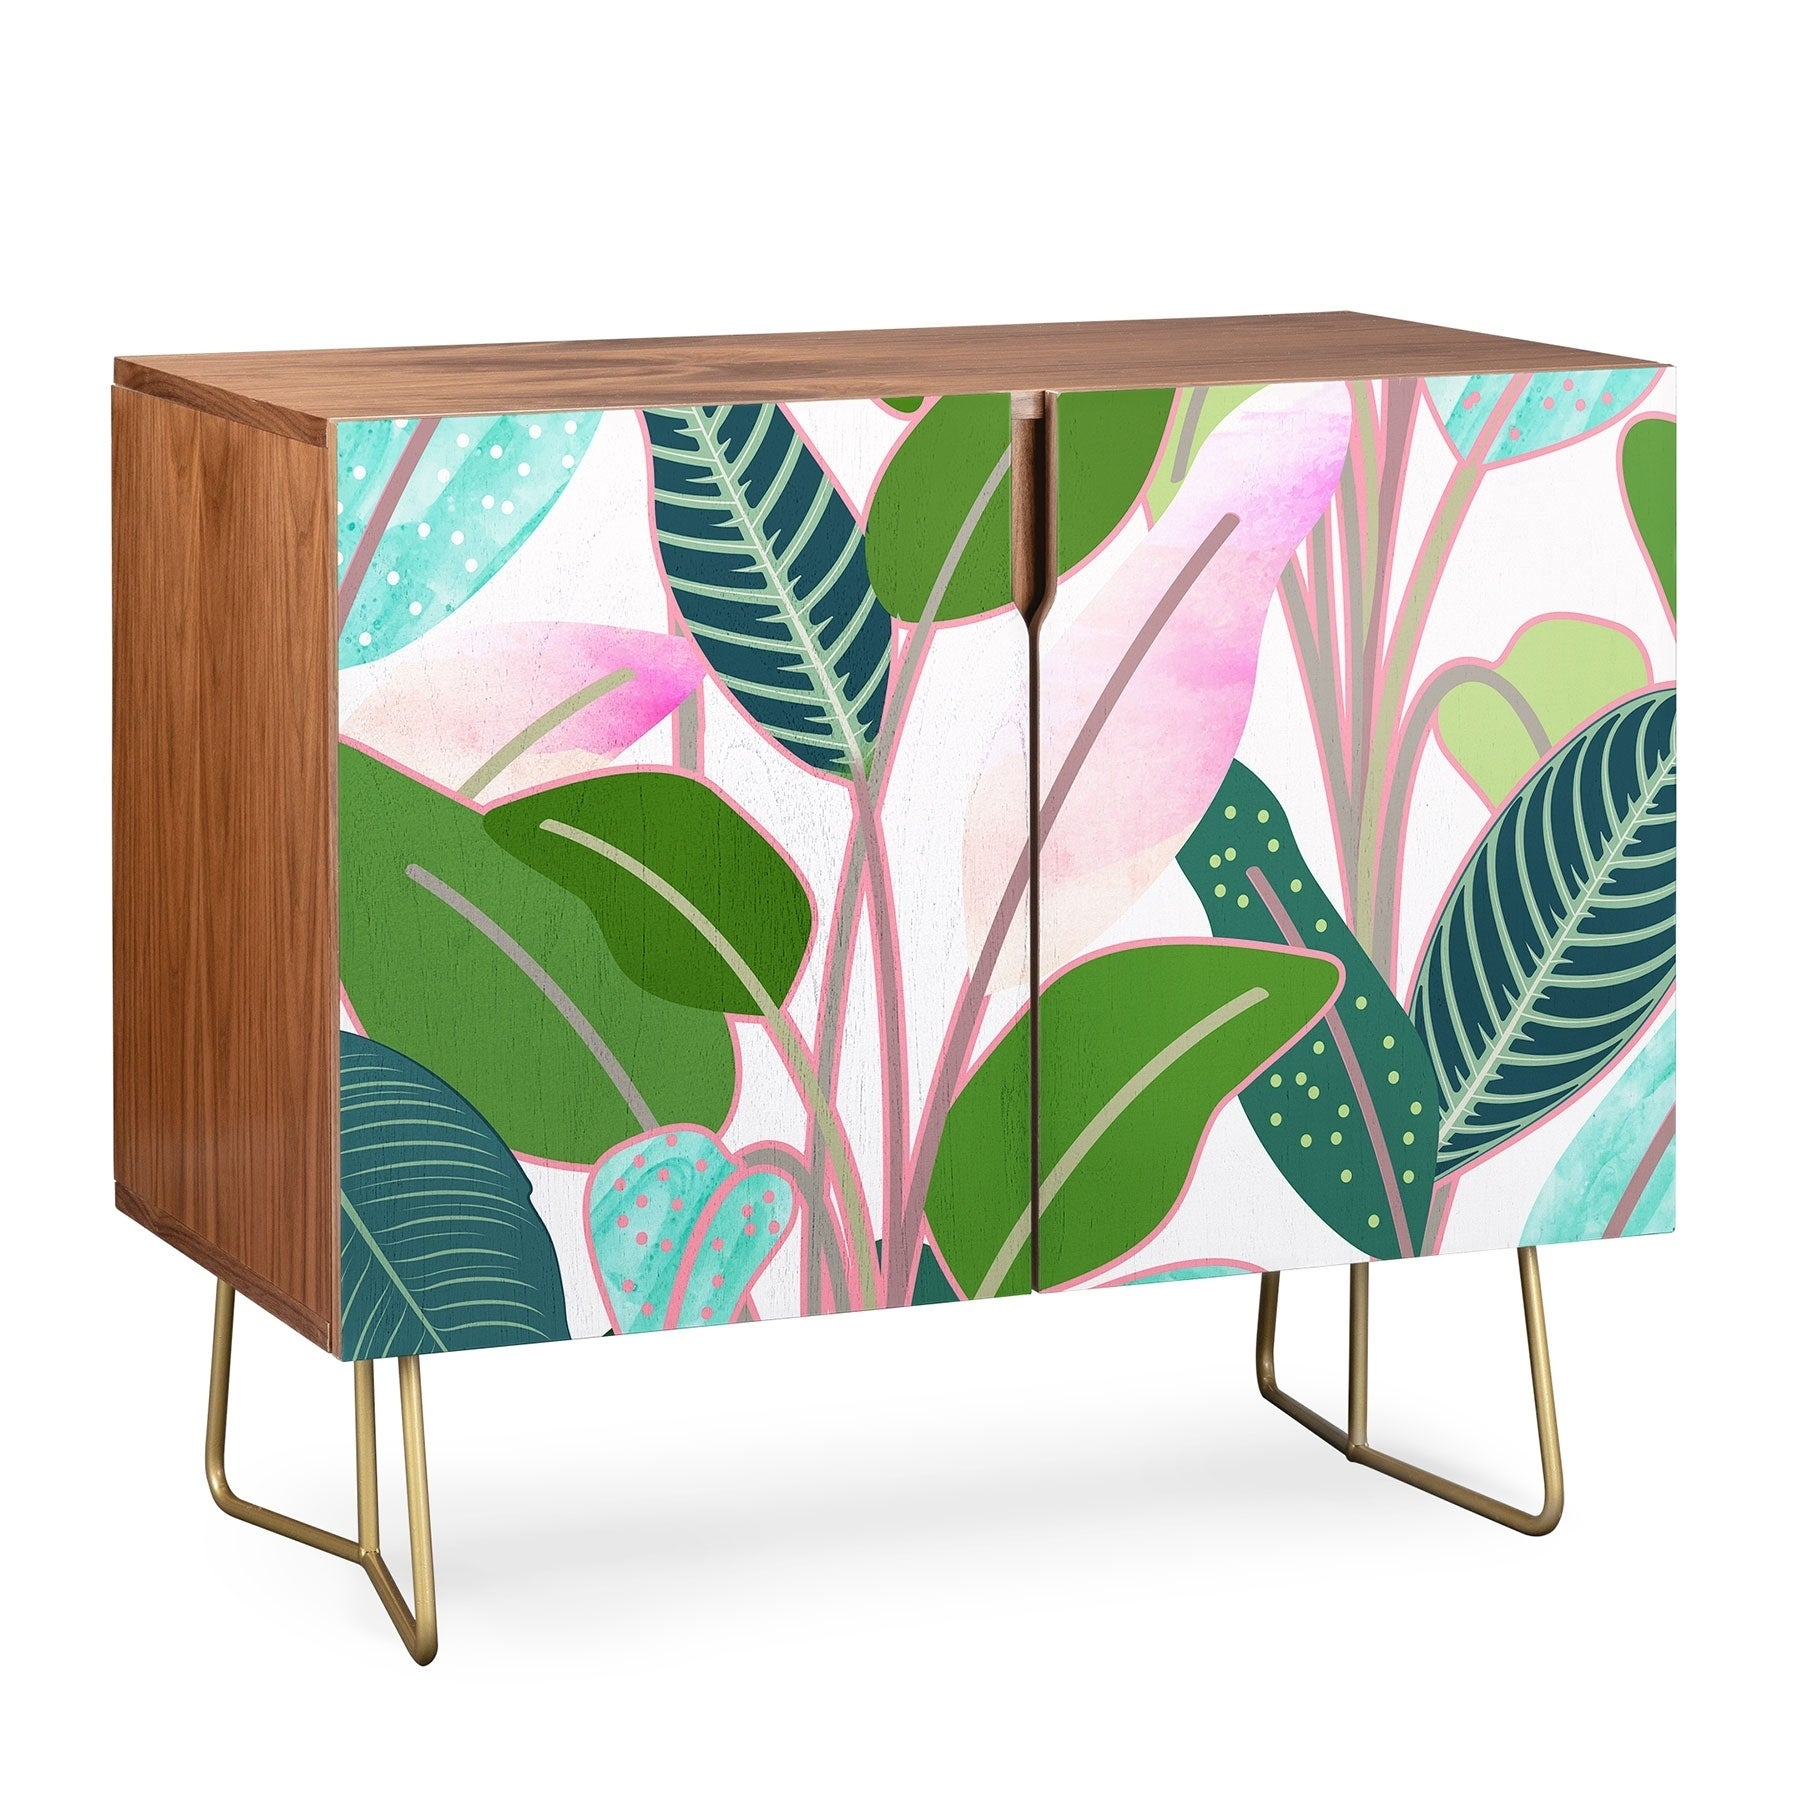 Deny Designs Colorful Leaves Credenza (Birch Or Walnut, 2 Leg Options) Intended For Colorful Leaves Credenzas (Photo 2 of 30)